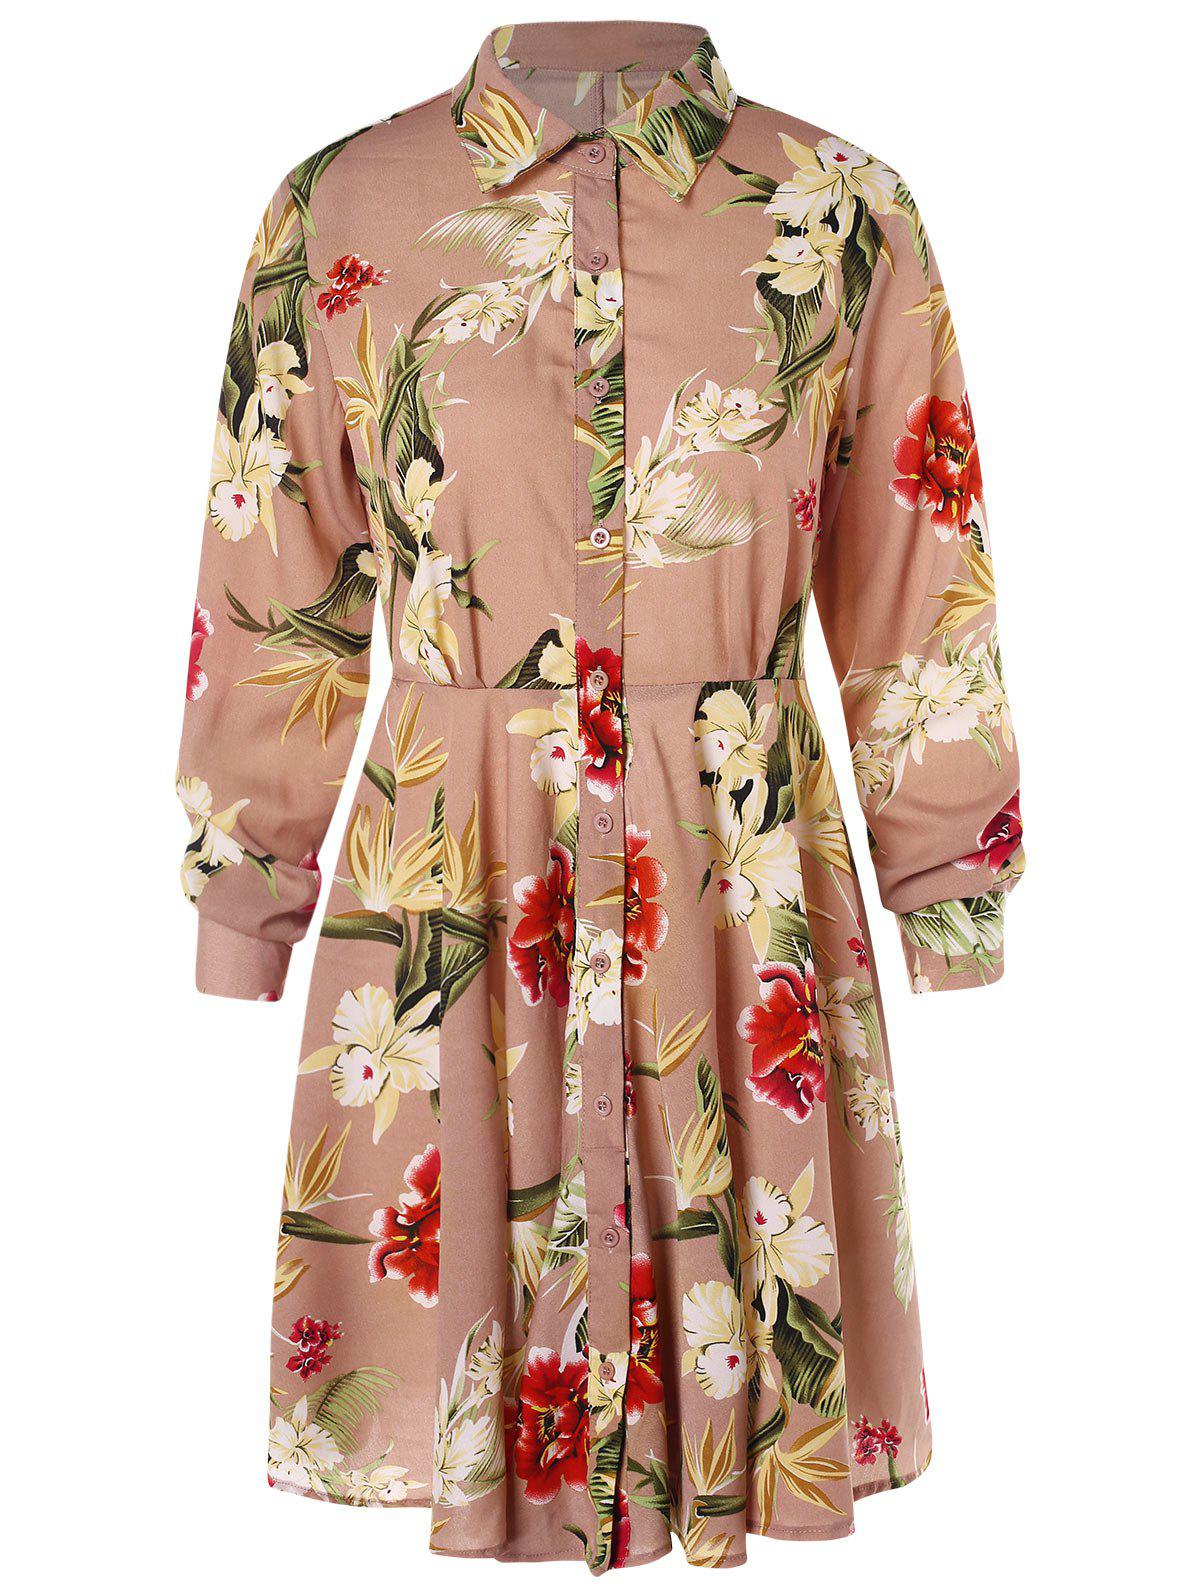 Floral Print Long Sleeve Shirt Dress